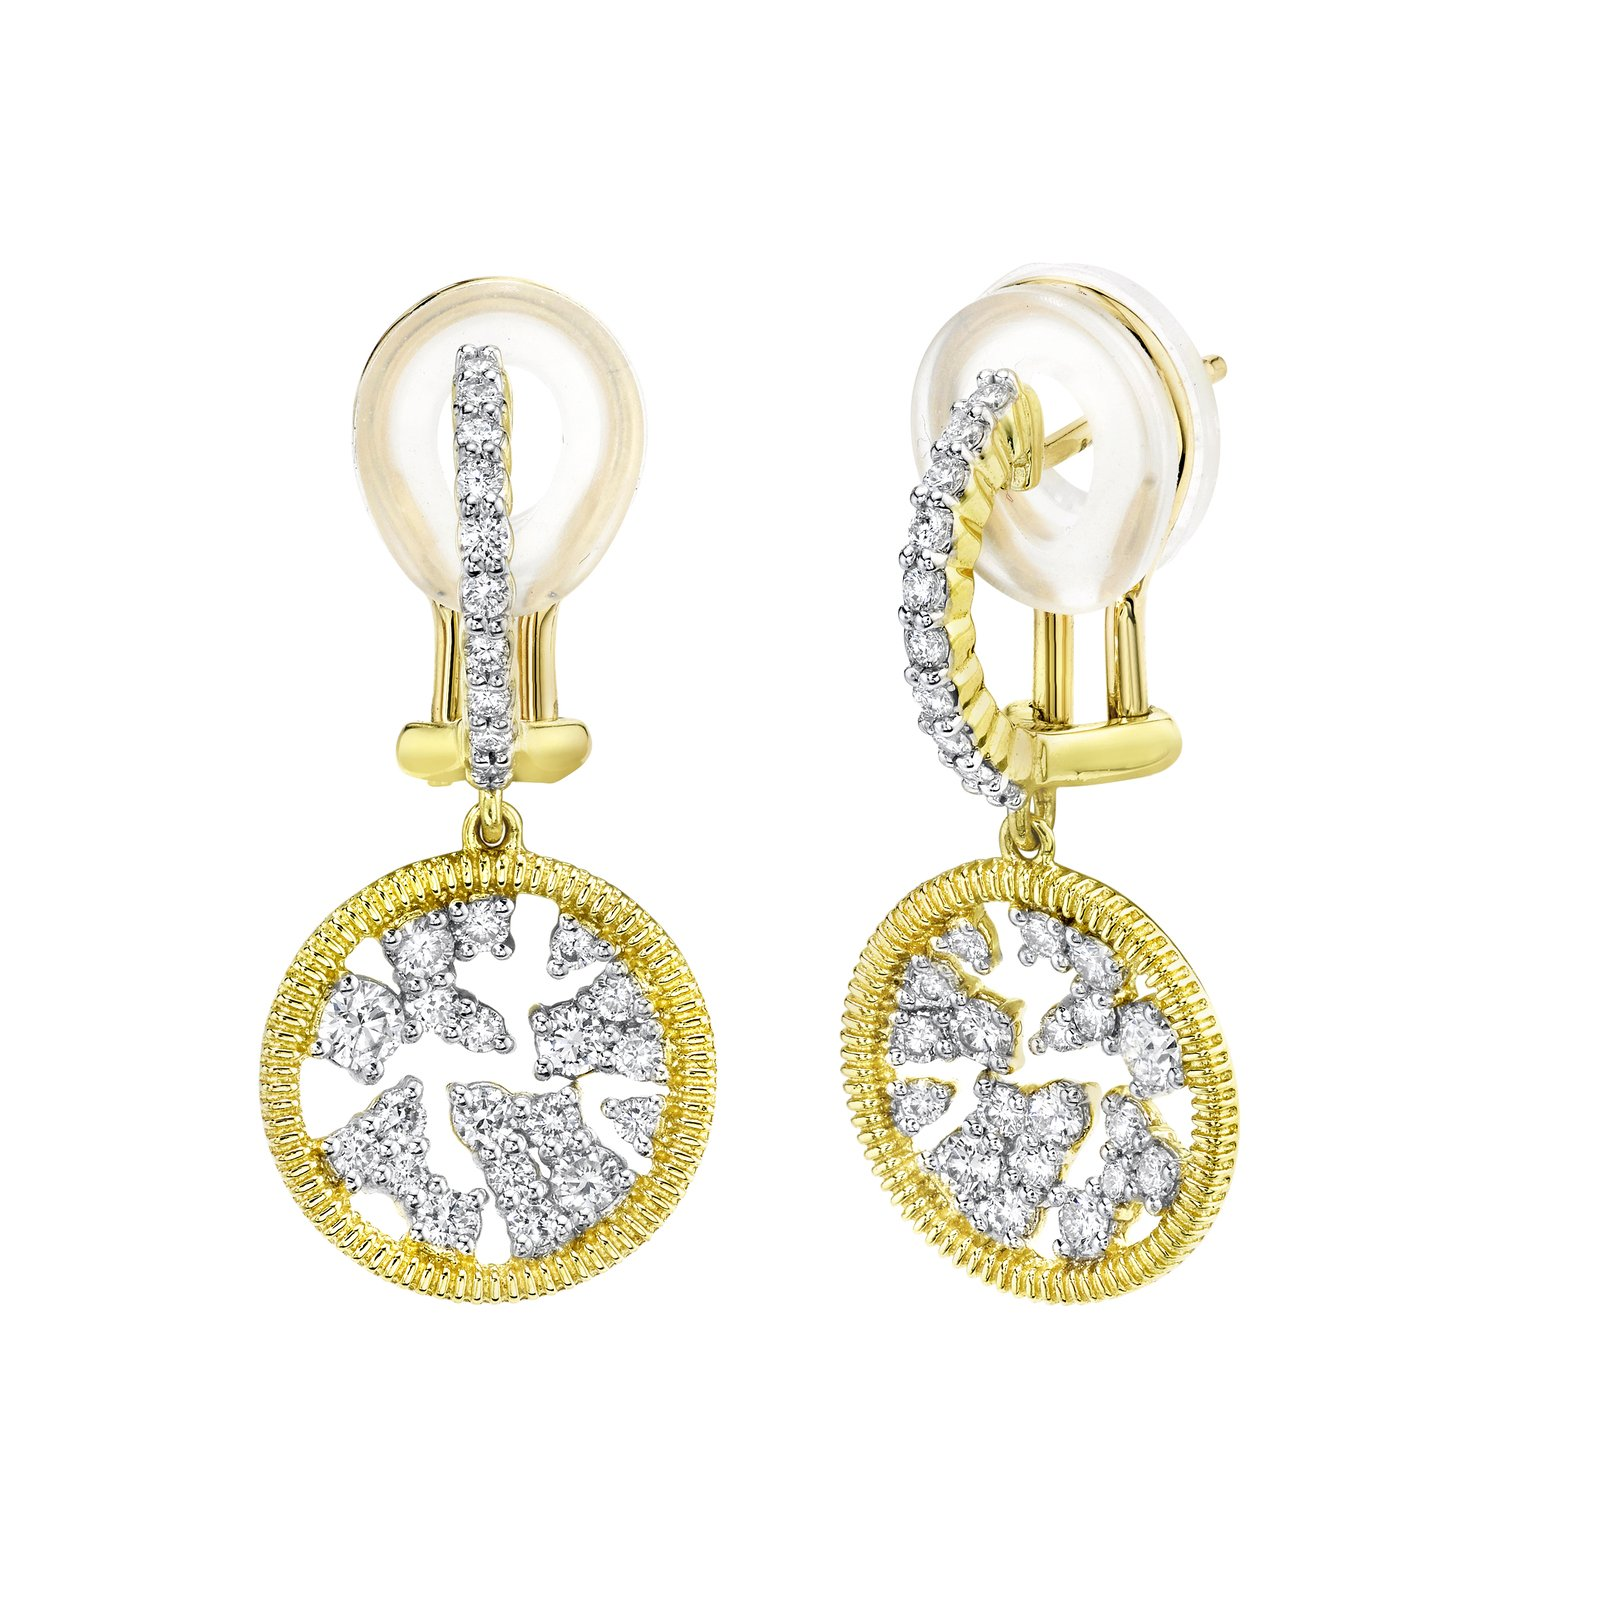 Sloane Street 18K Yellow Gold .91cts  Diamonds Gold Earrings with Stones E026D-WDCB-Y